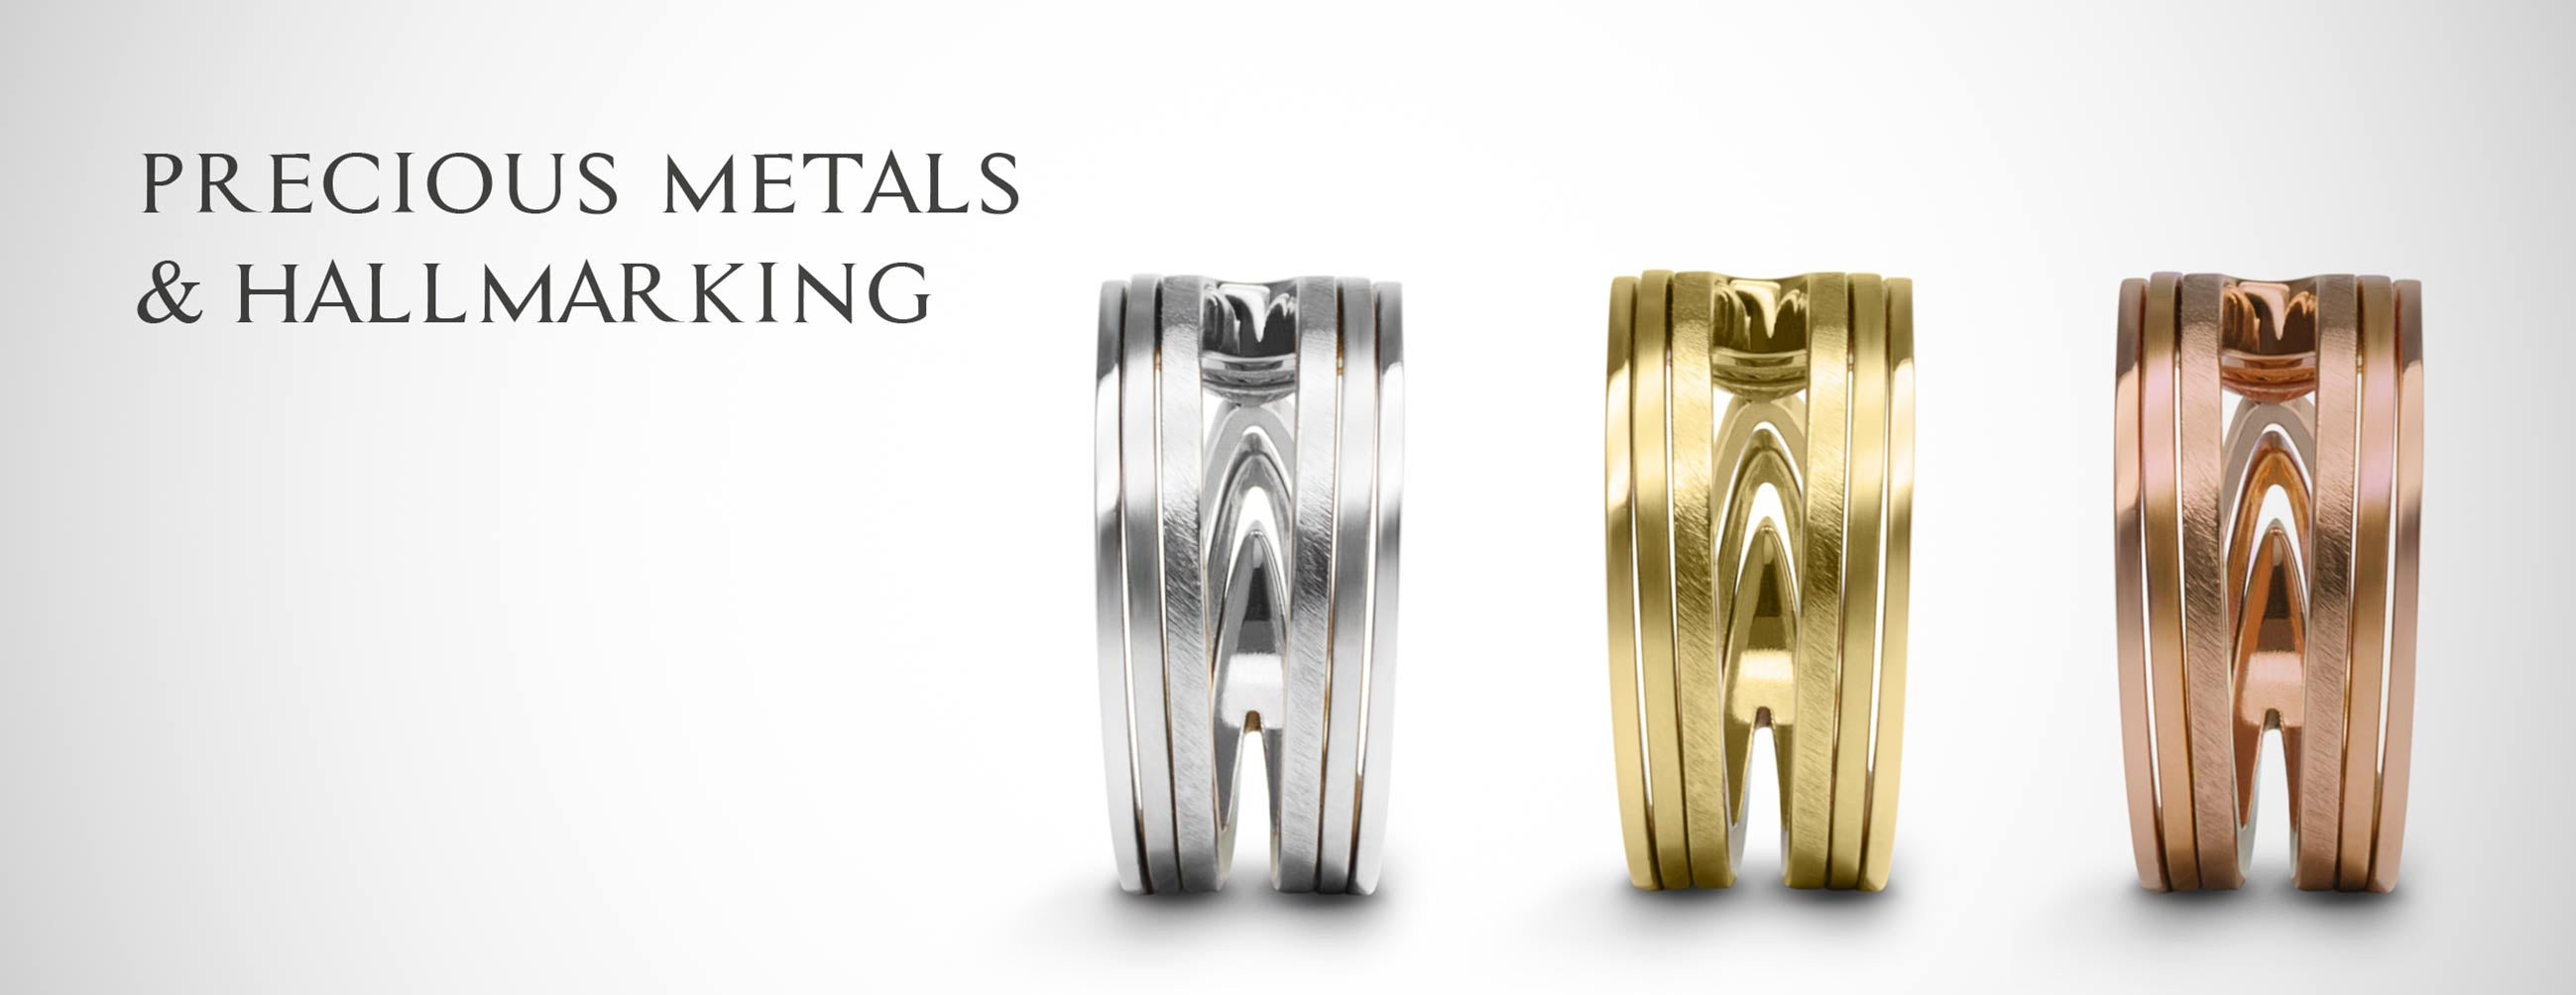 Precious Metals And Hallmarking Amanda Mansell